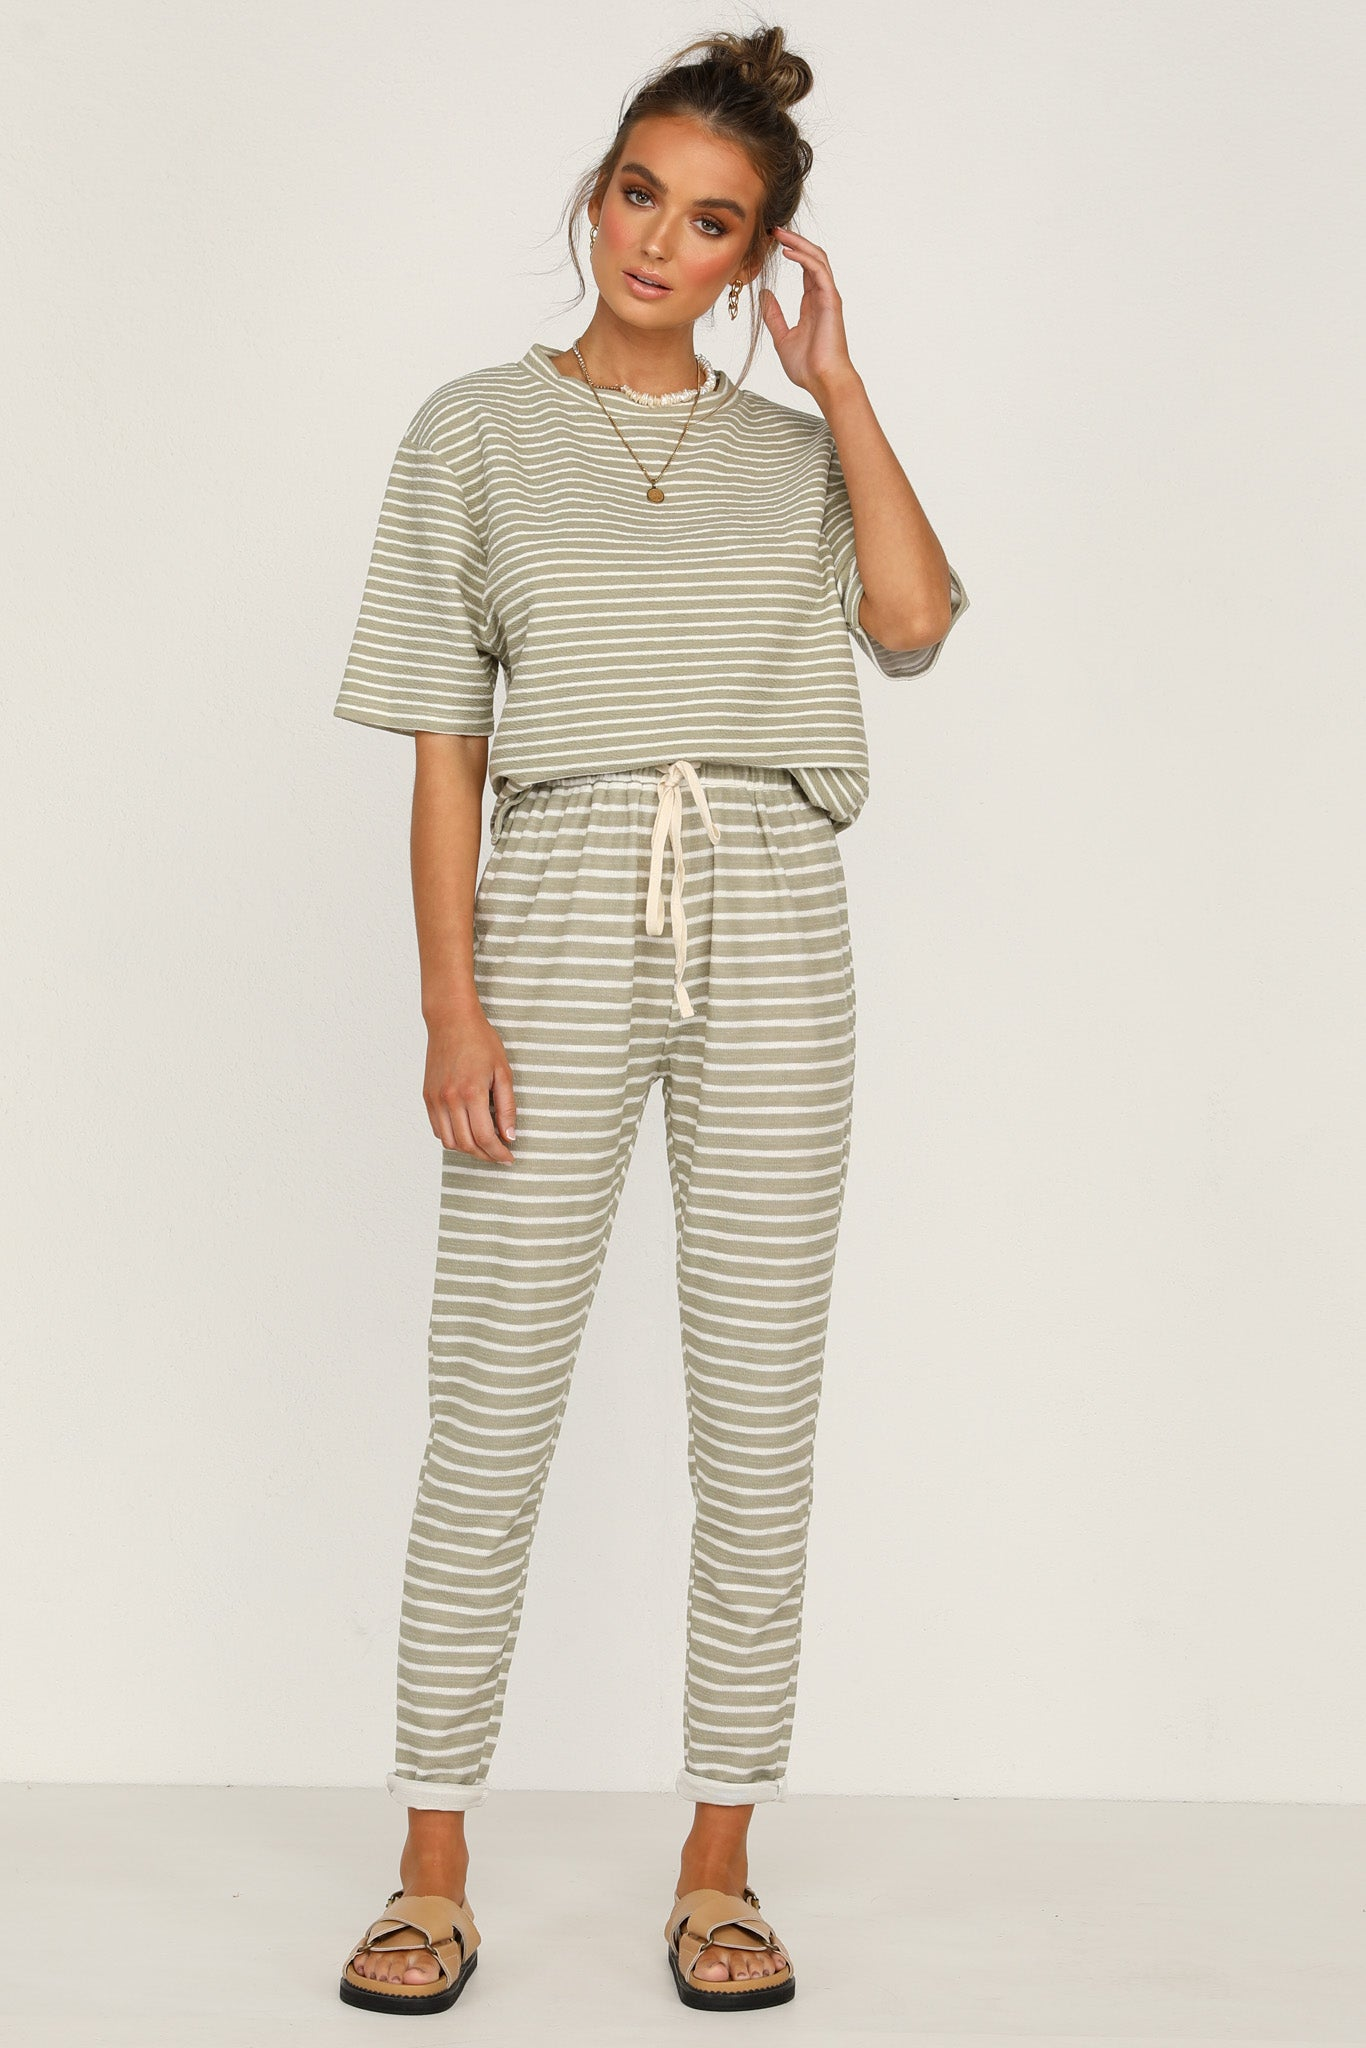 Tides Pants (Khaki Stripe)